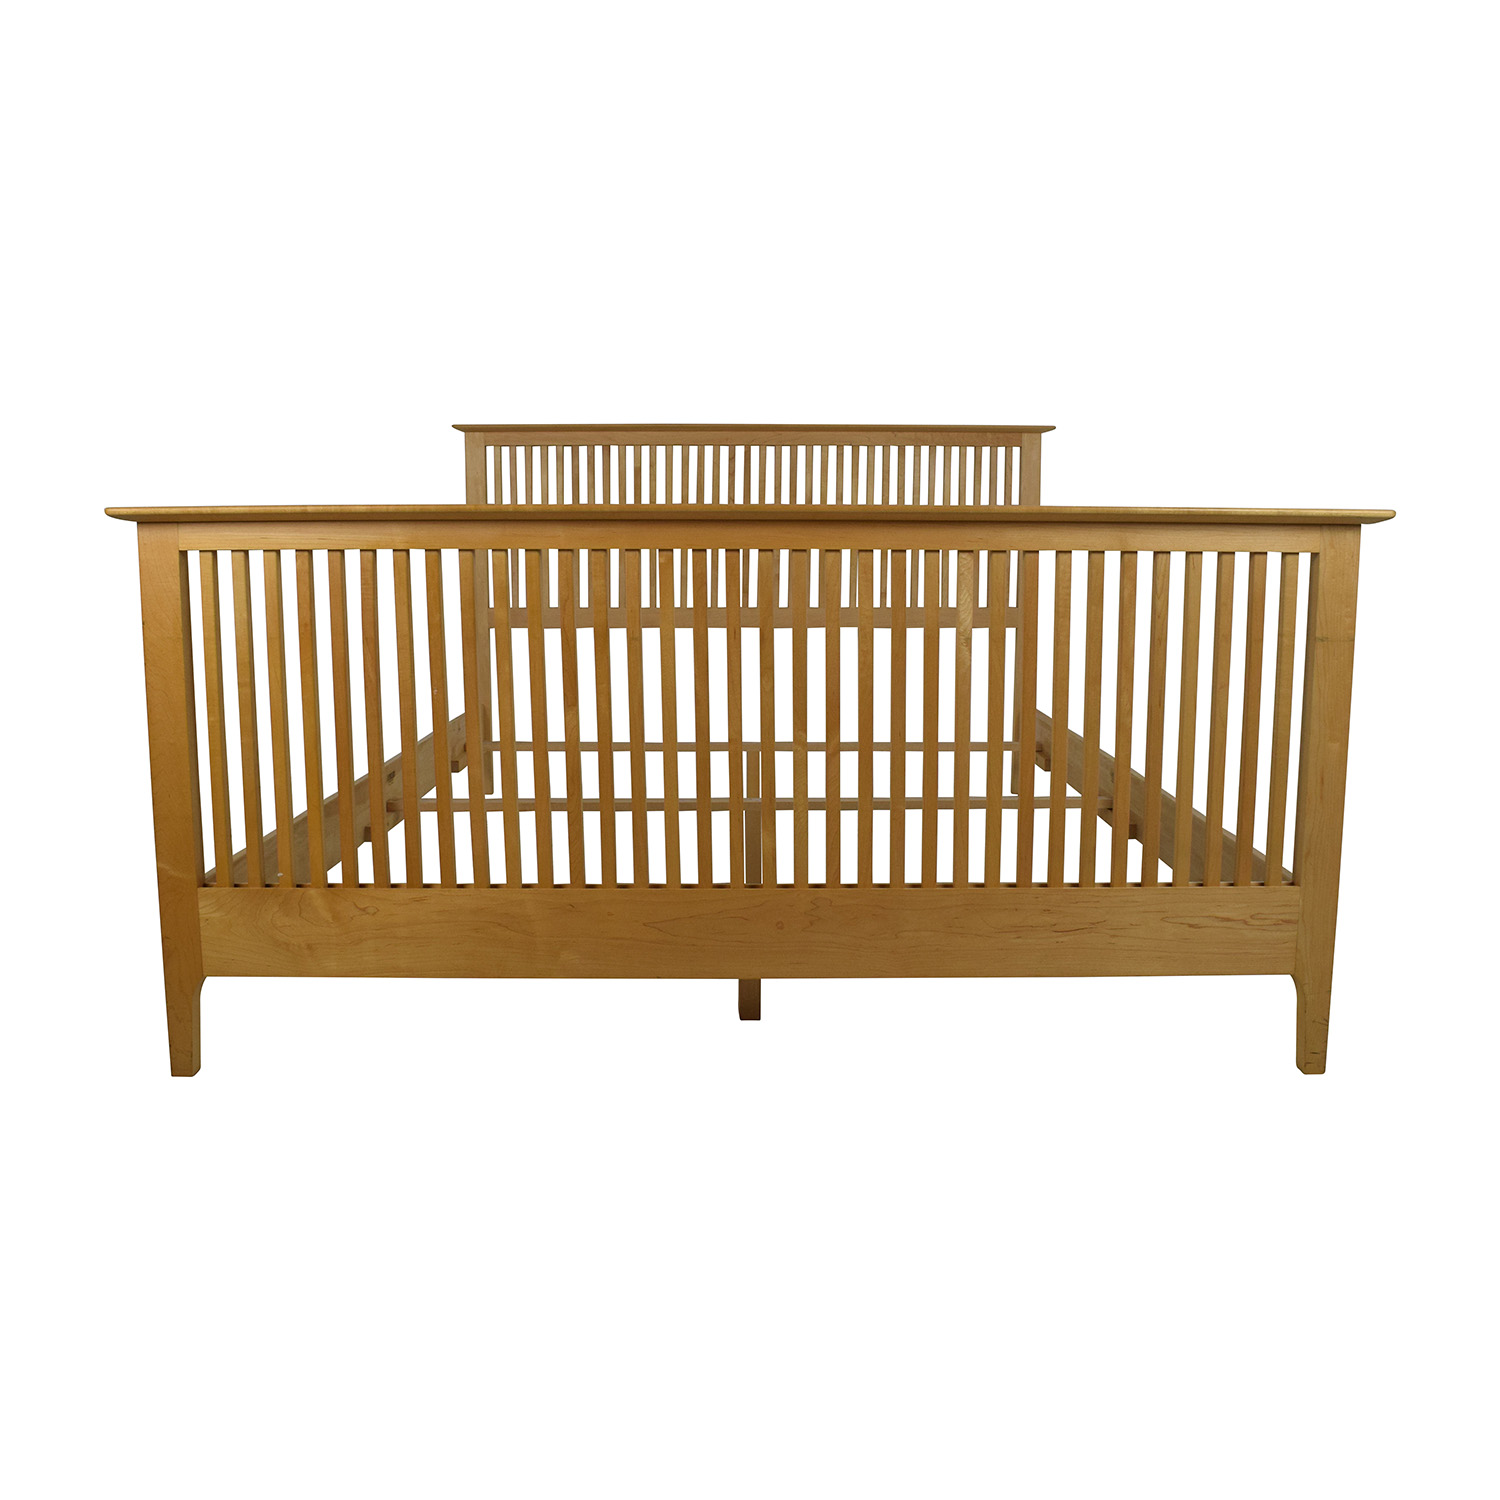 Copeland Copeland Solid Maple Shaker Queen Bed Frame nyc